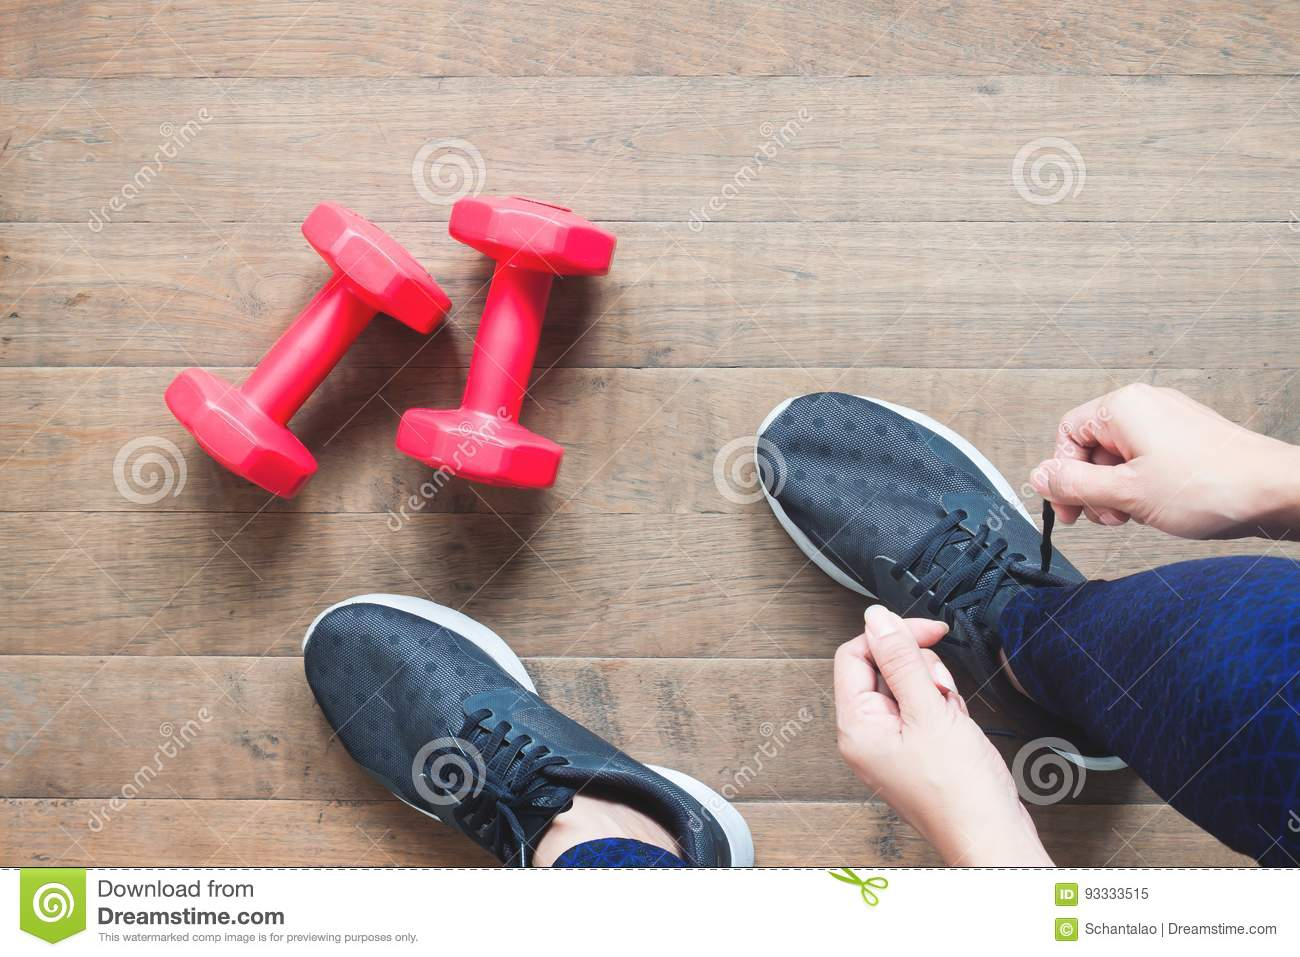 Tying sport shoes, Asian woman getting ready for weight training. Exercise, Fitness training. Healthy lifestyle